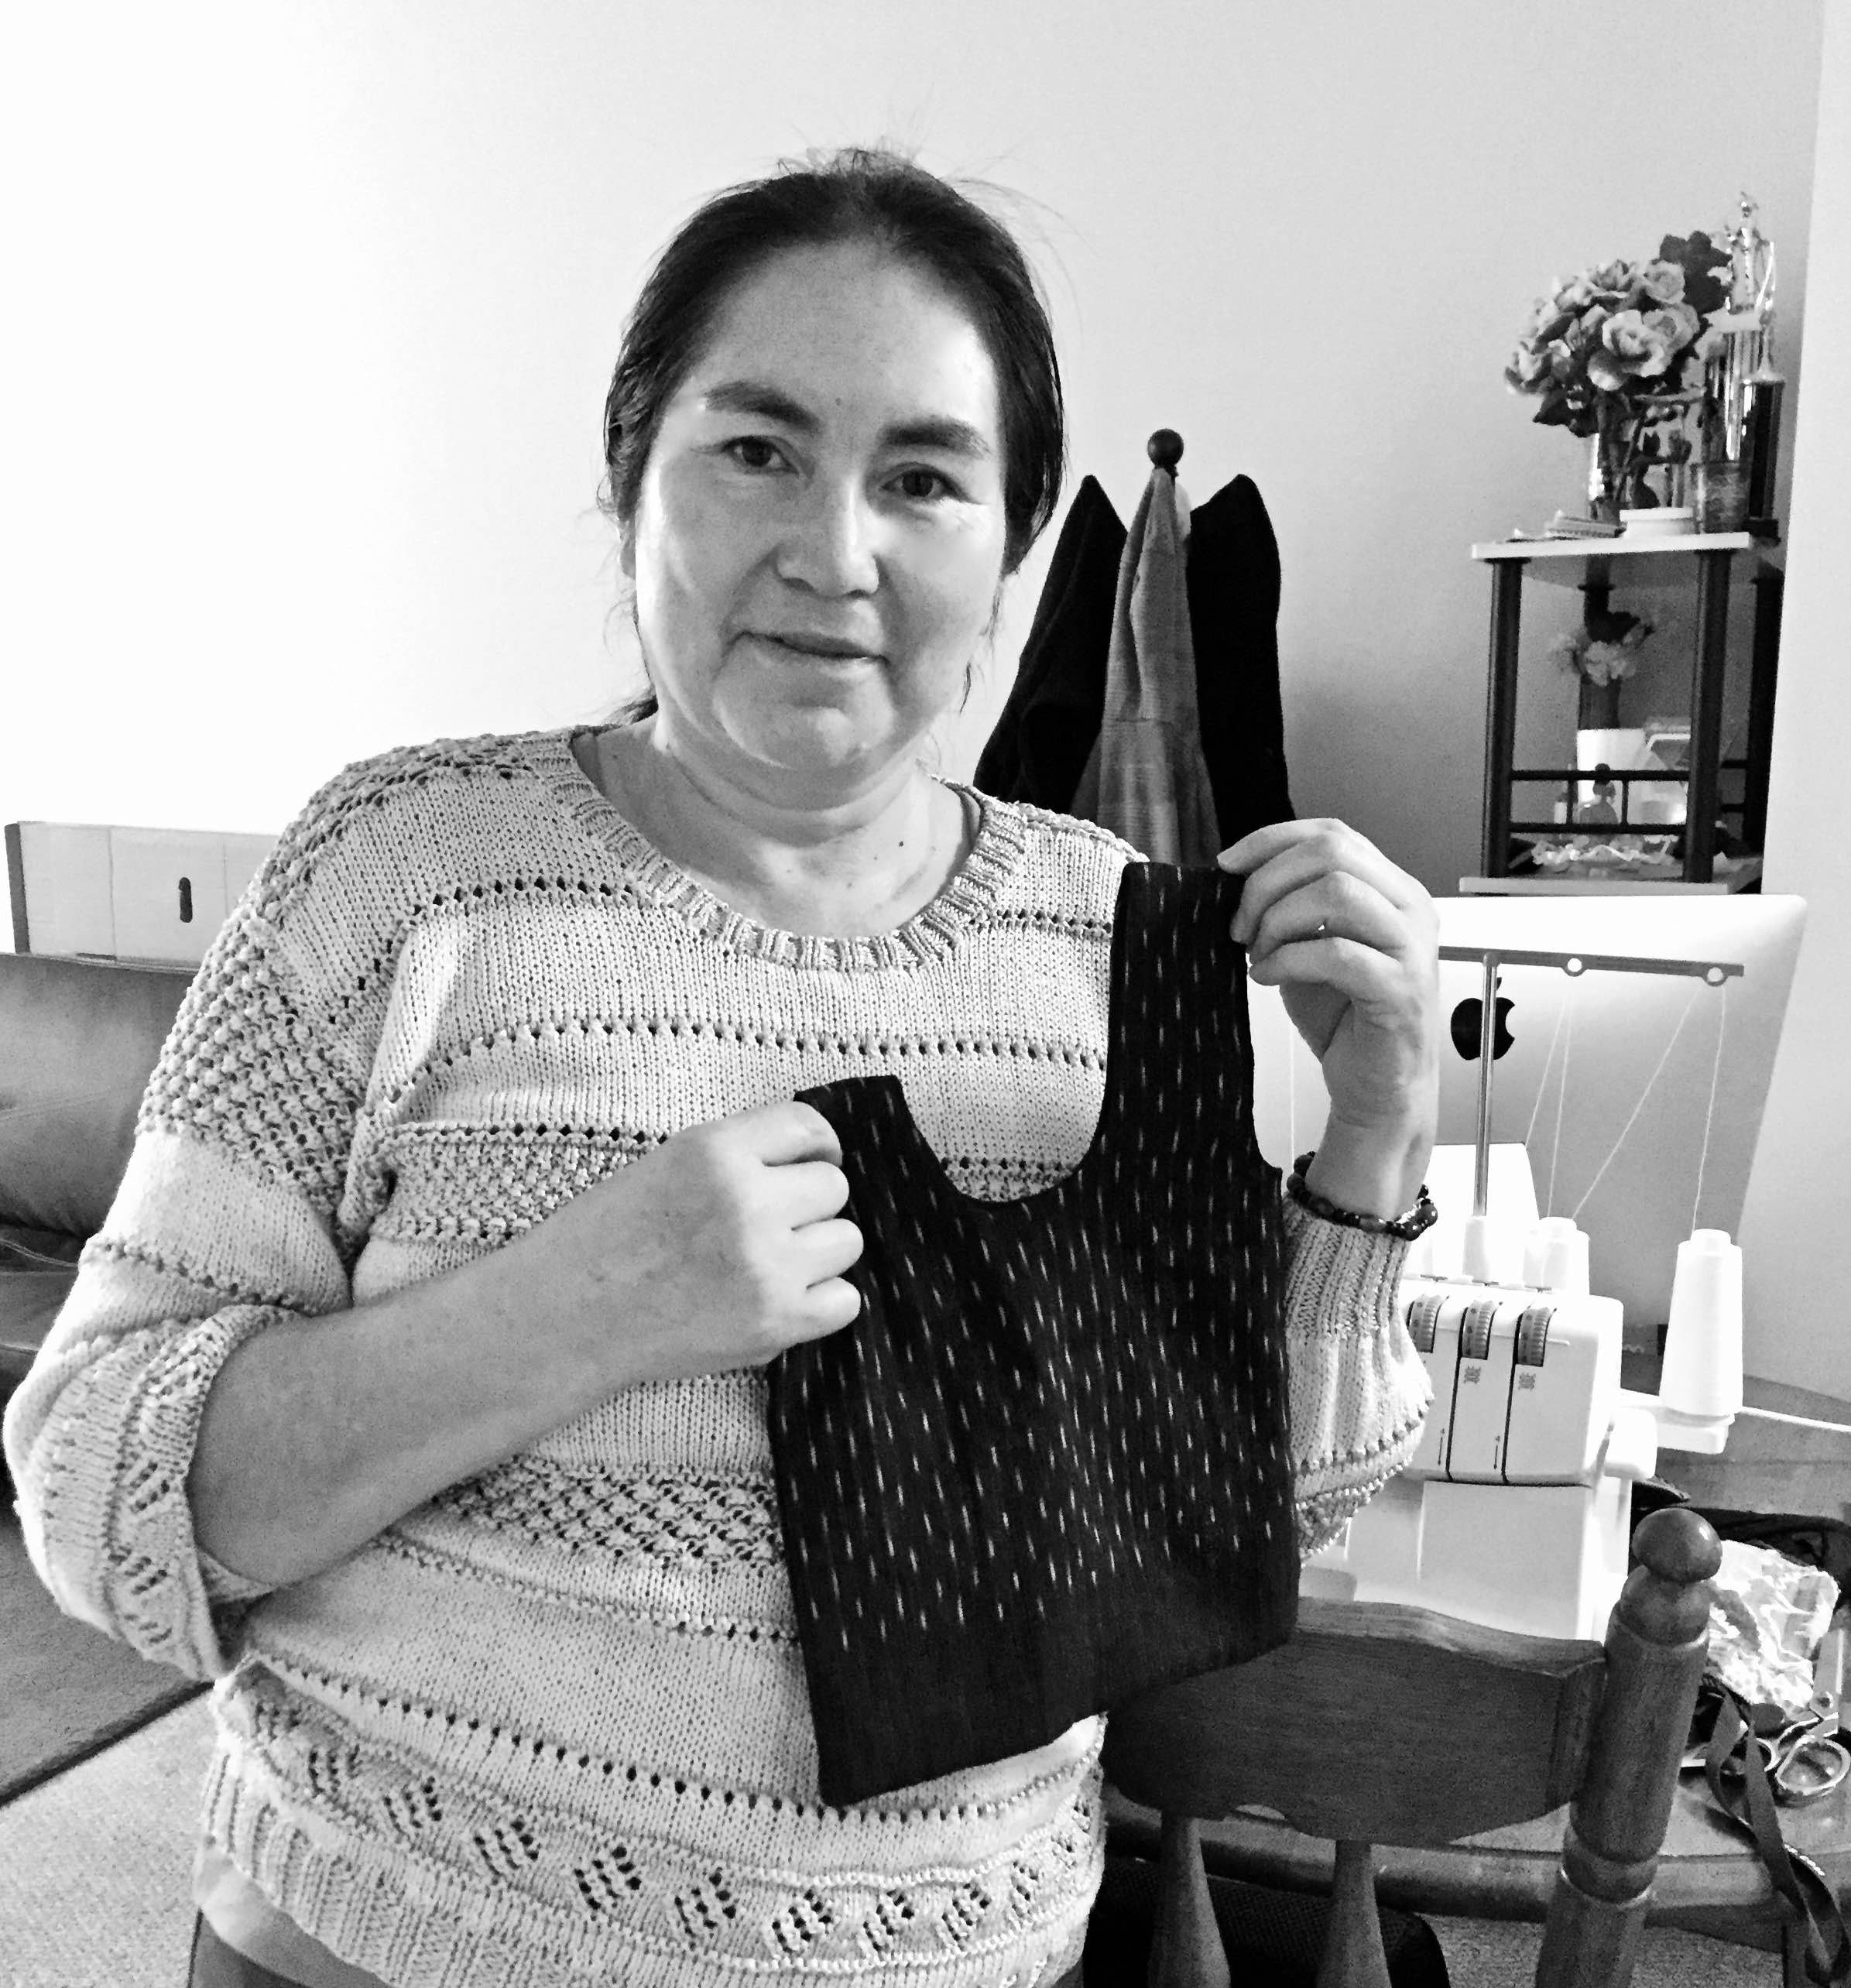 Janneth with a finished knotbag pouch, in the rain pattern.